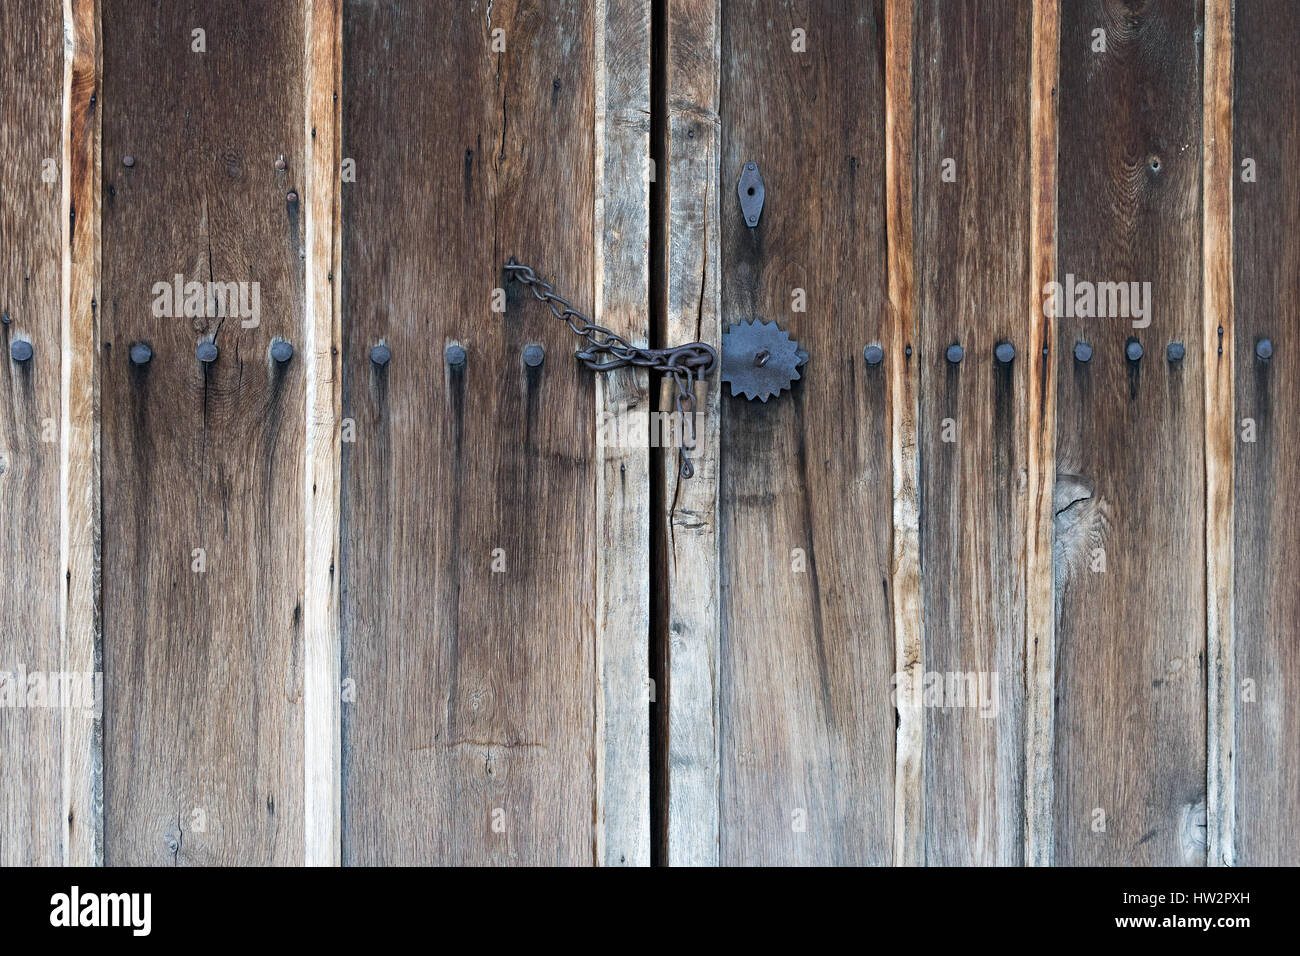 Chain Locked Wooden Door With Big Iron Nails And Metal Ornaments